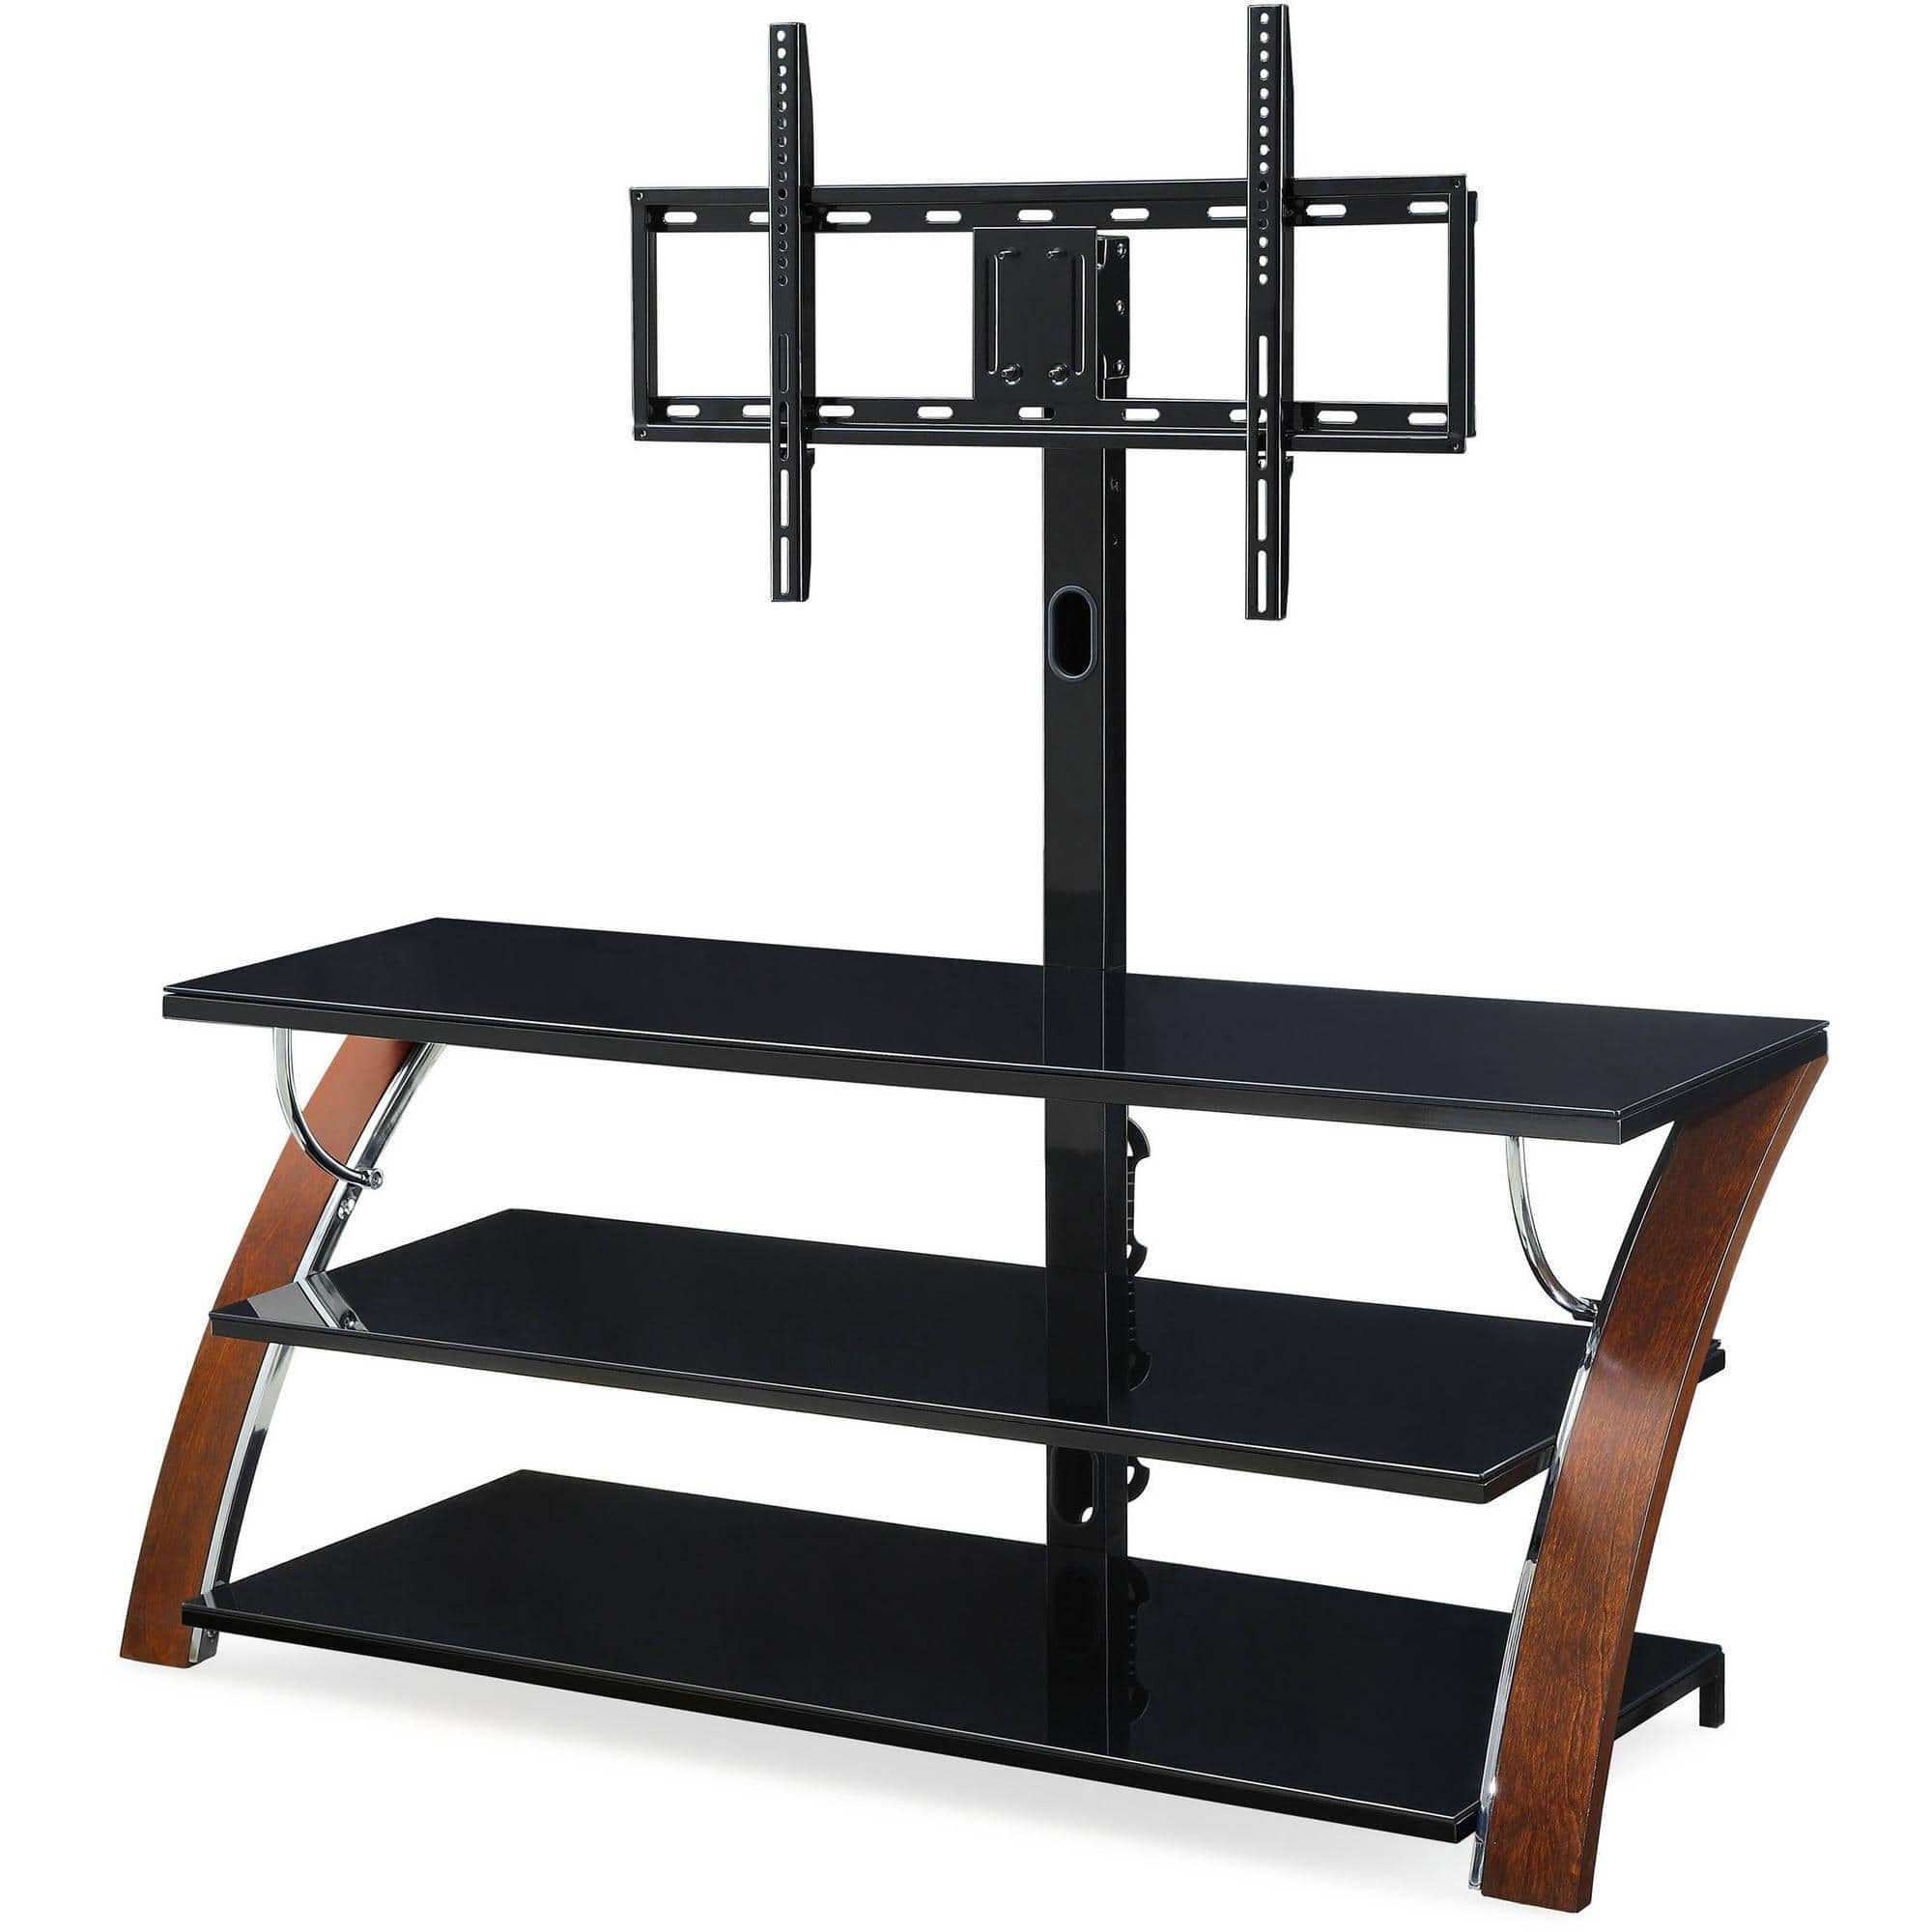 Whalen-3-In-1-Black-TV-Console-for-TVs-up-to-70 is $99.99